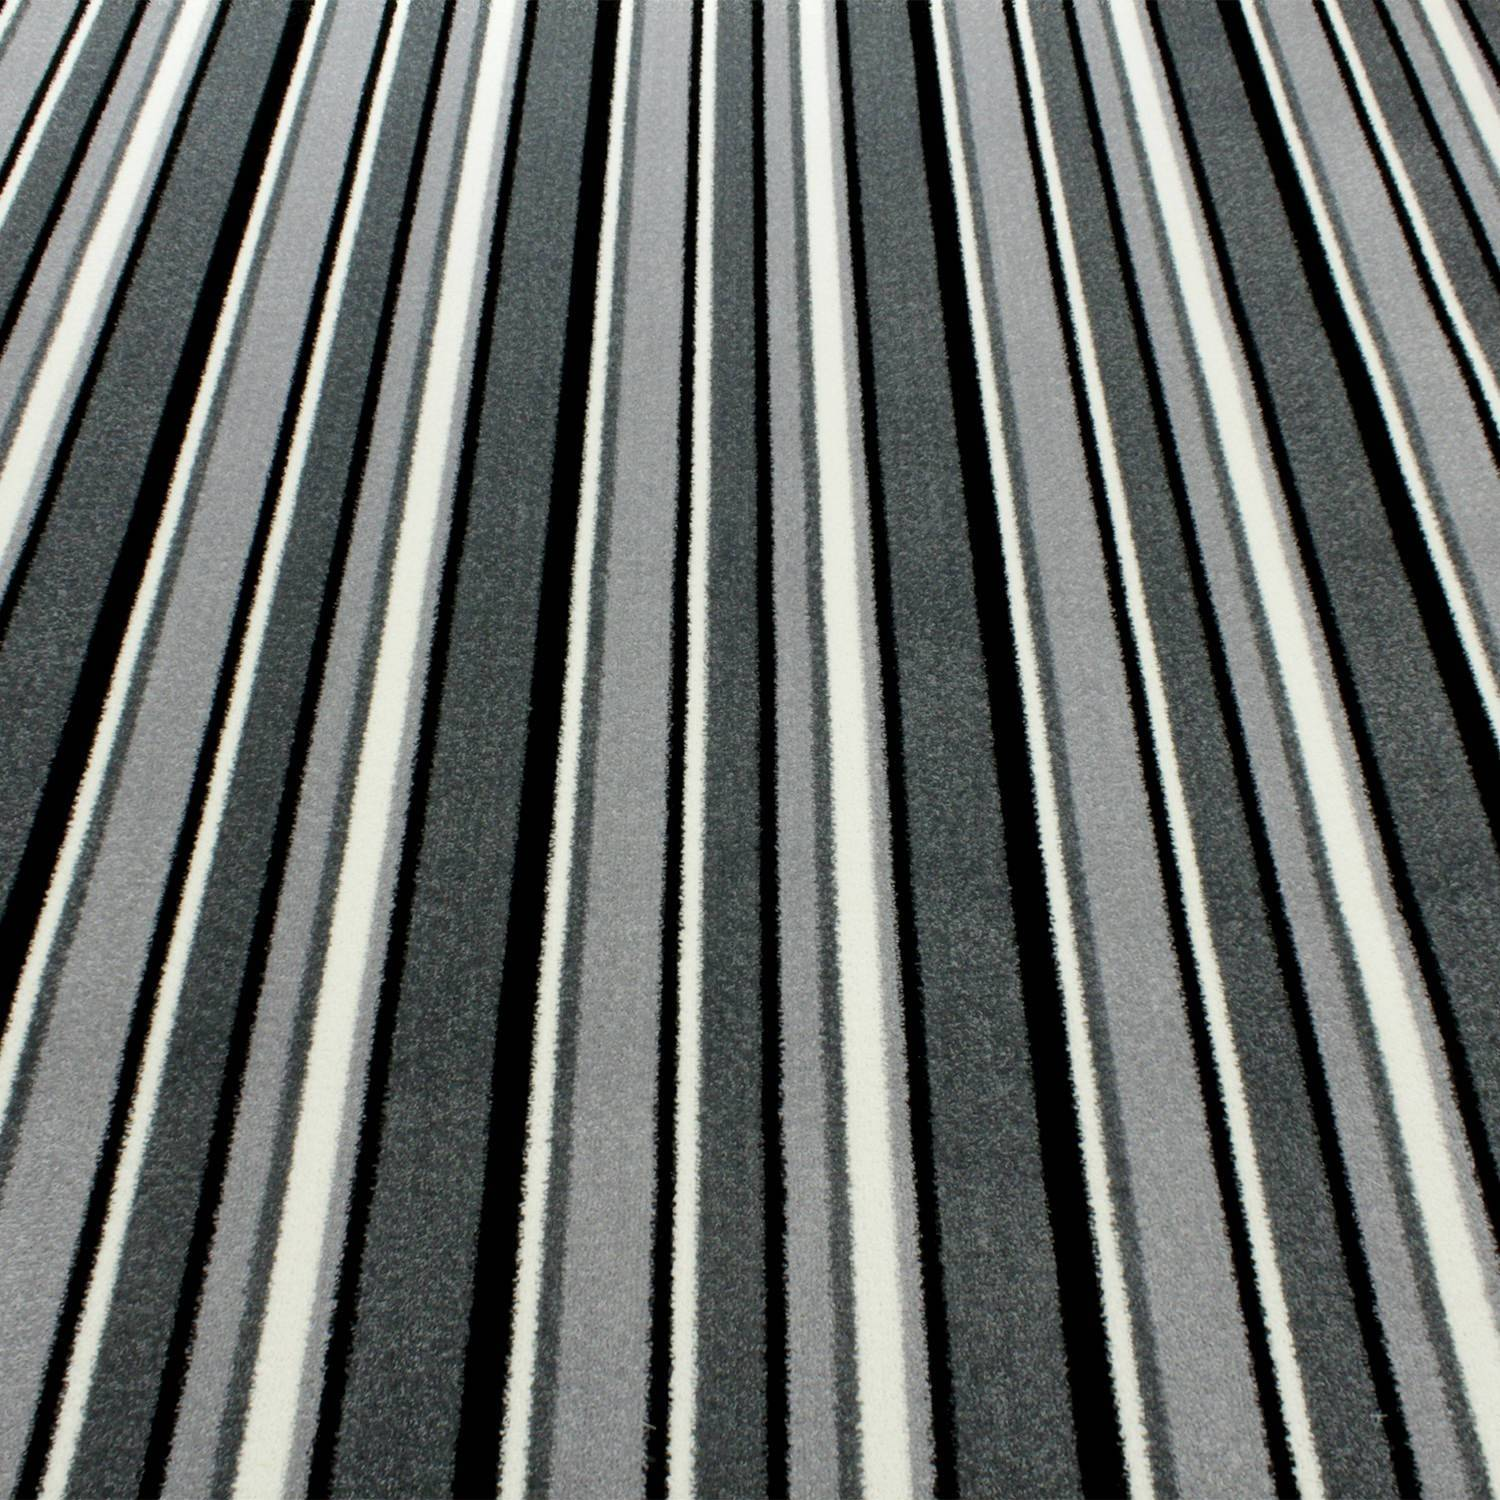 Black Grey White Striped Carpet